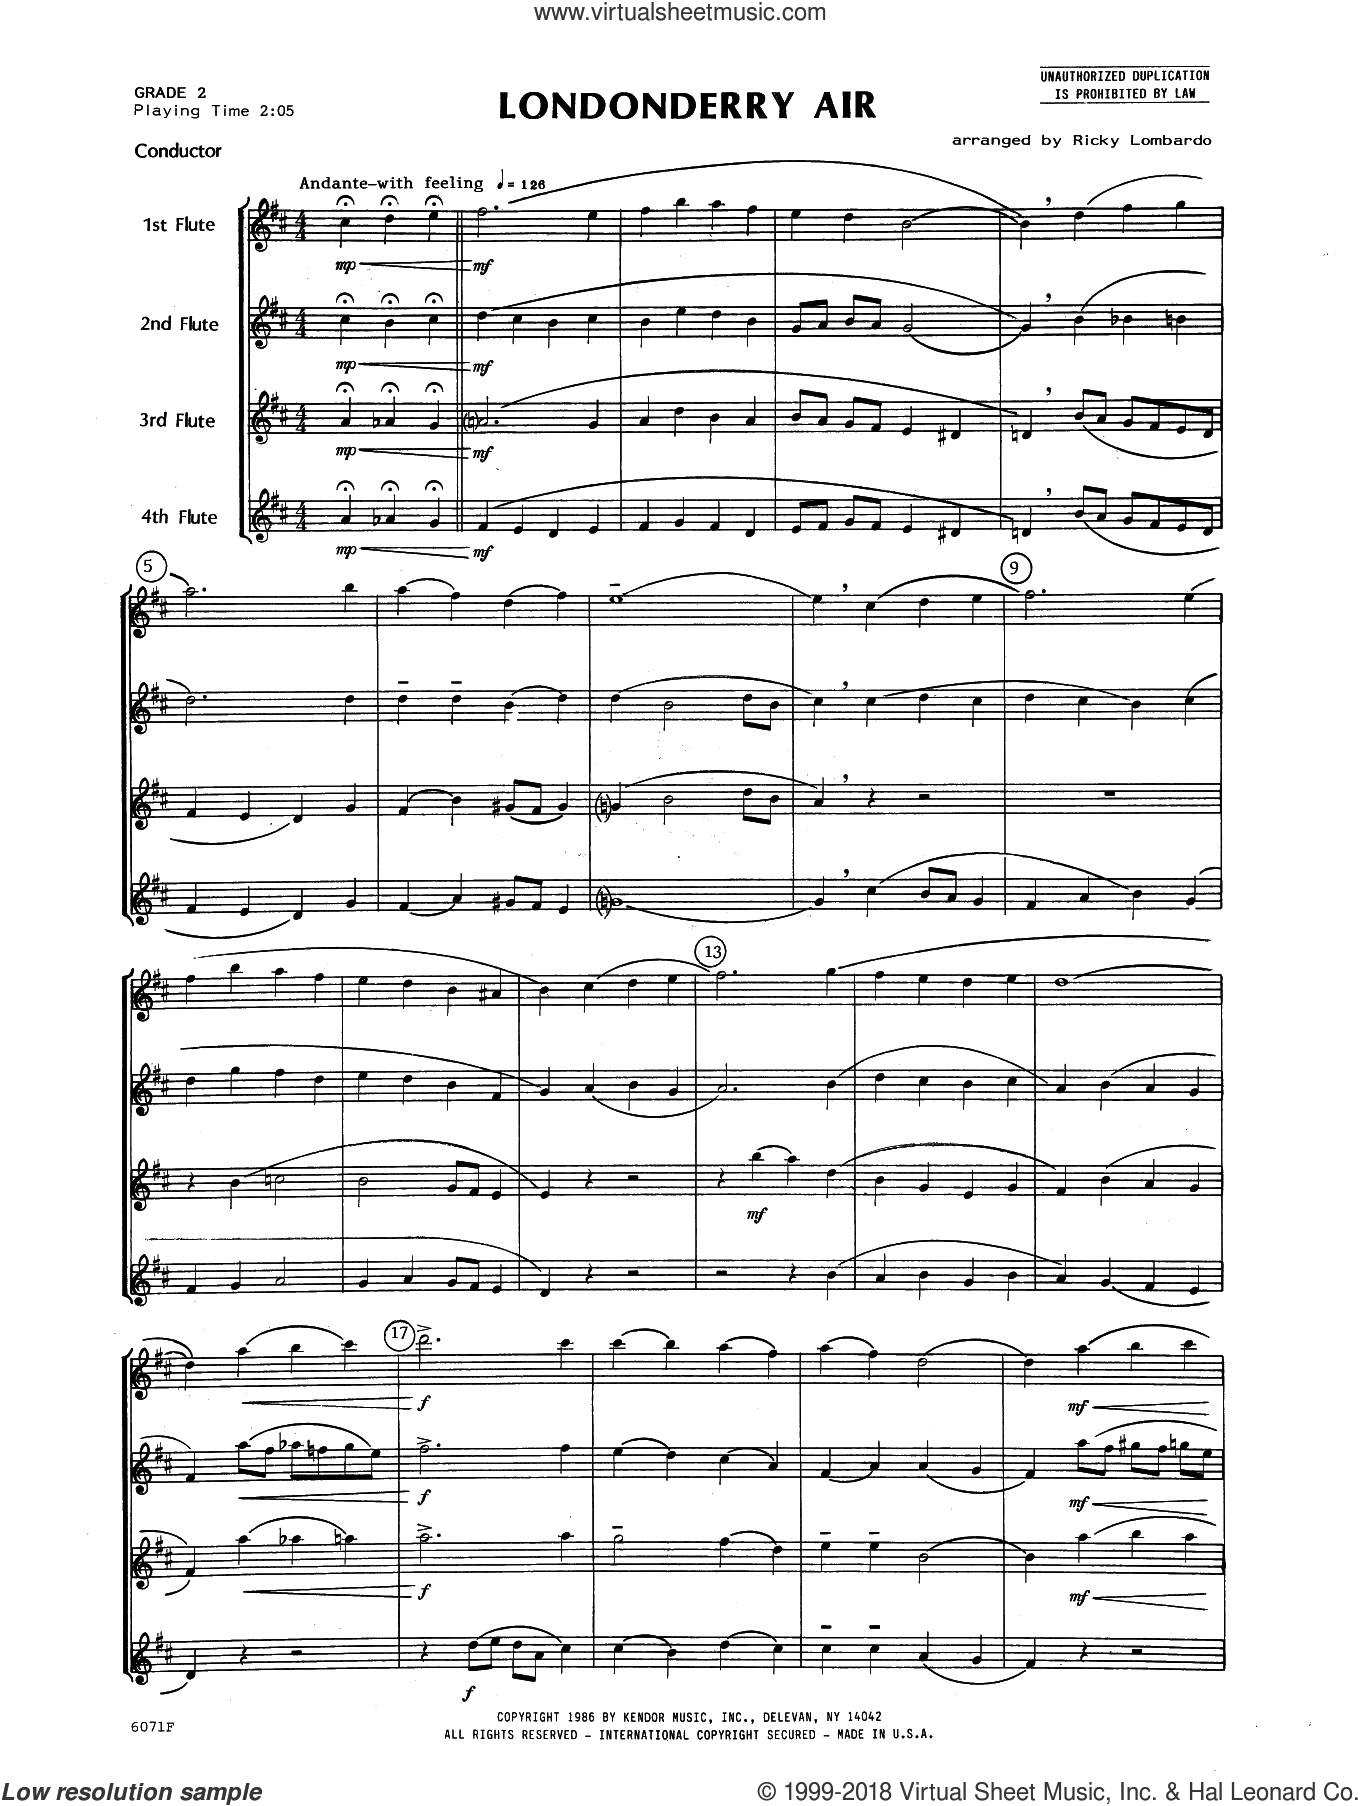 Londonderry Air (COMPLETE) sheet music for flute quartet by Lombardo and Miscellaneous, classical score, intermediate. Score Image Preview.